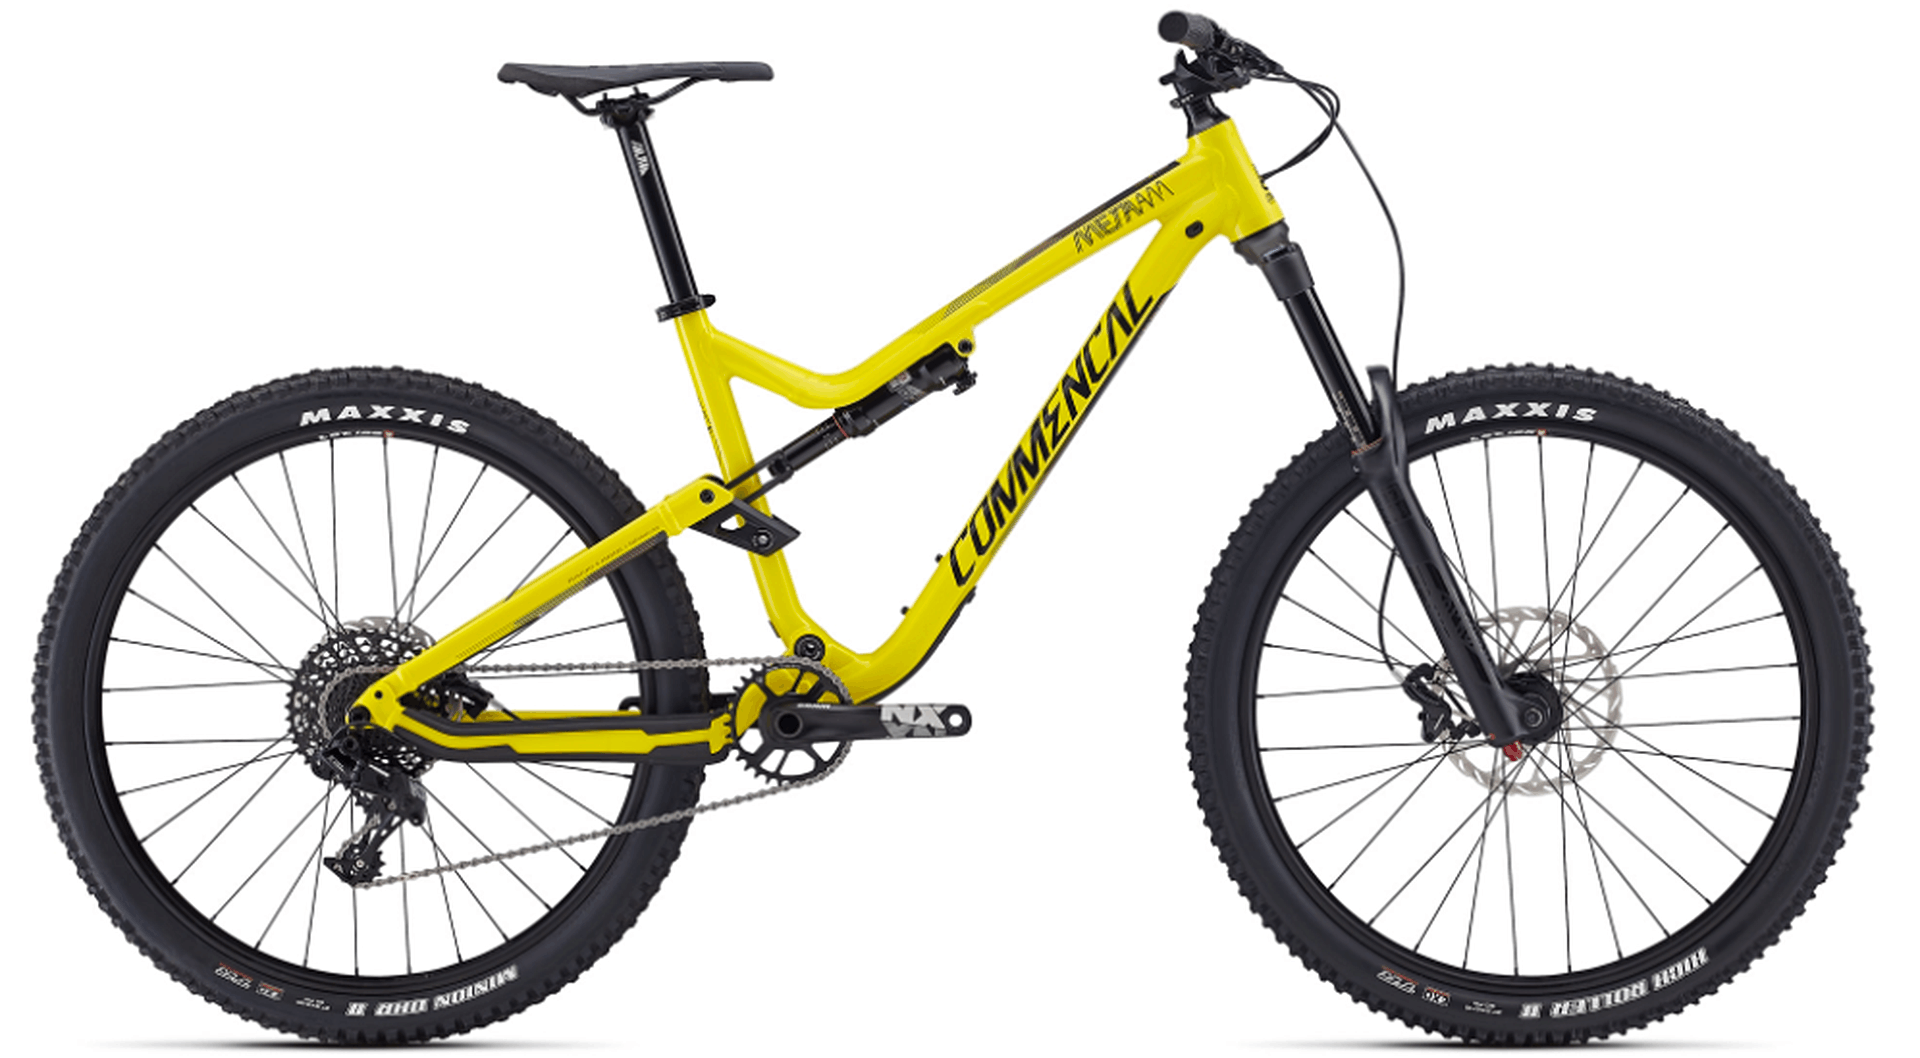 11 Of The Best Mtbs For Your Money In 2017 Bike Magazine Bikes